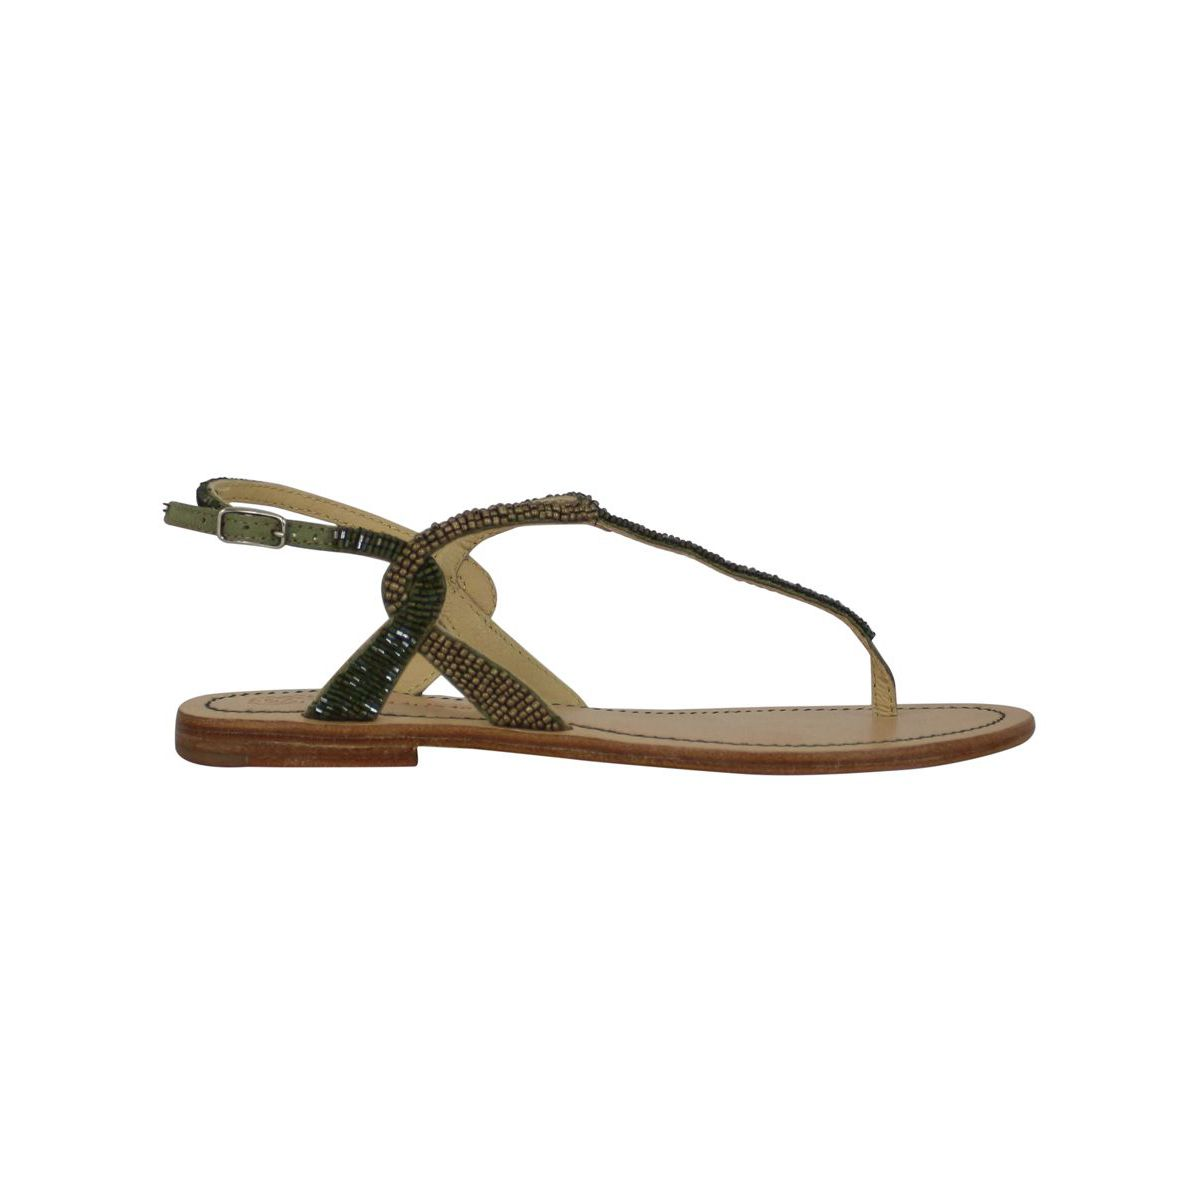 Capri sandals cuts beads Gold / green Maliparmi